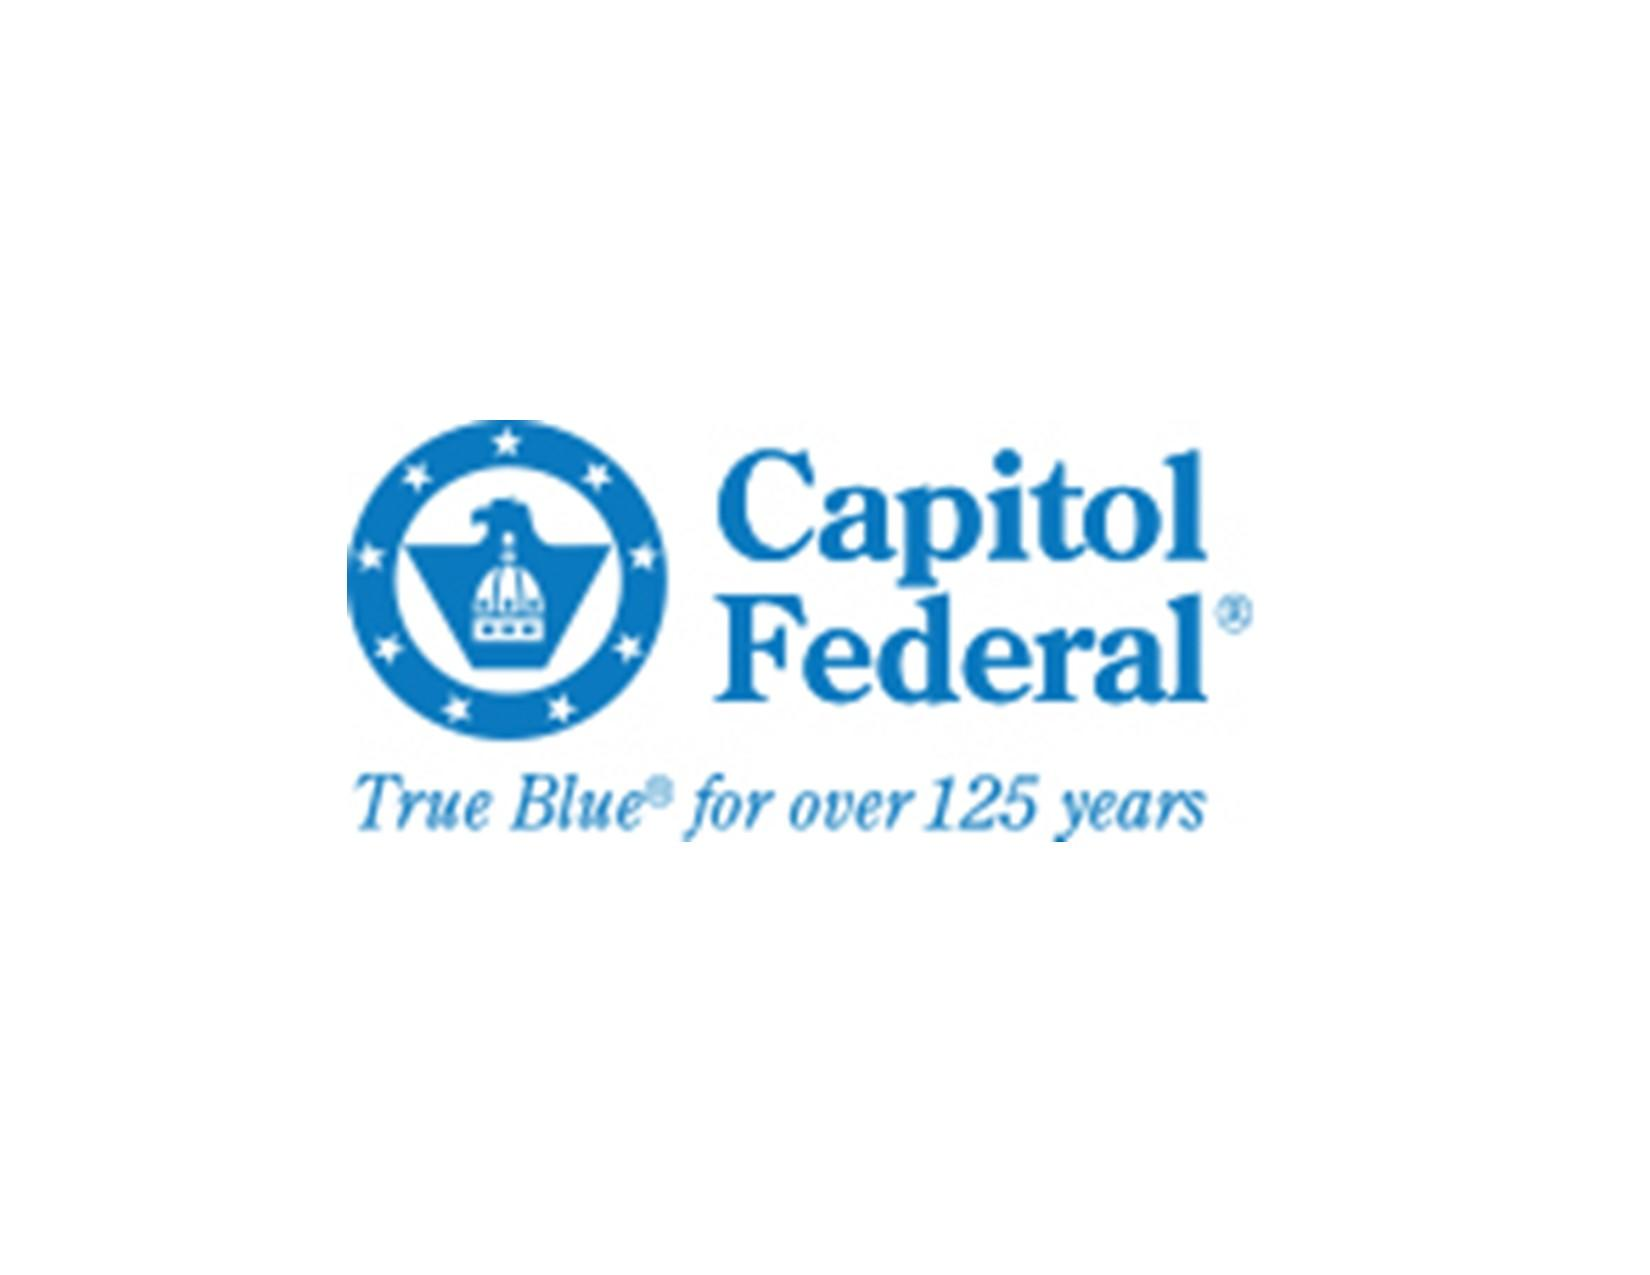 Capitol Federal: True Blue for over 125 years